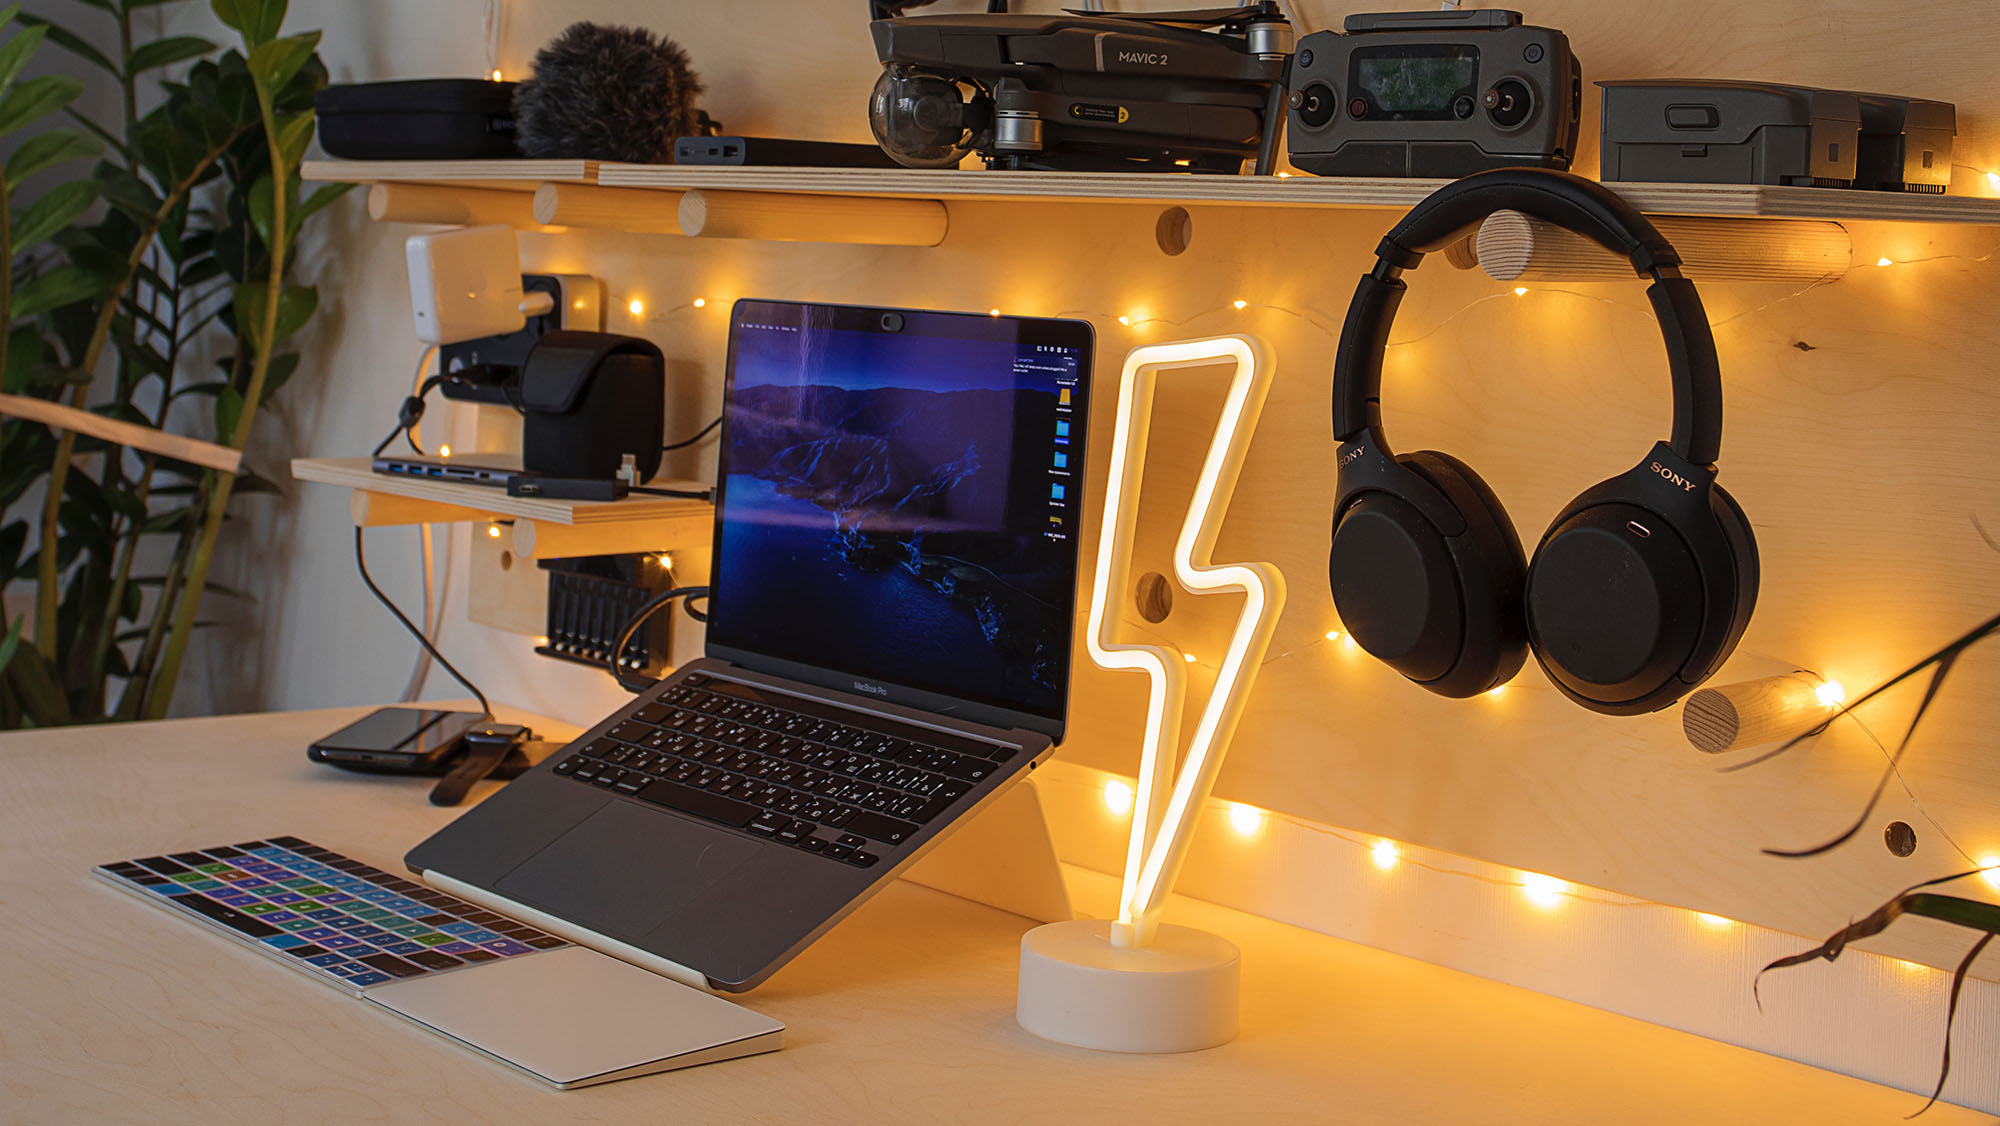 A desk with a lightning bolt lamp, headphones, and a laptop